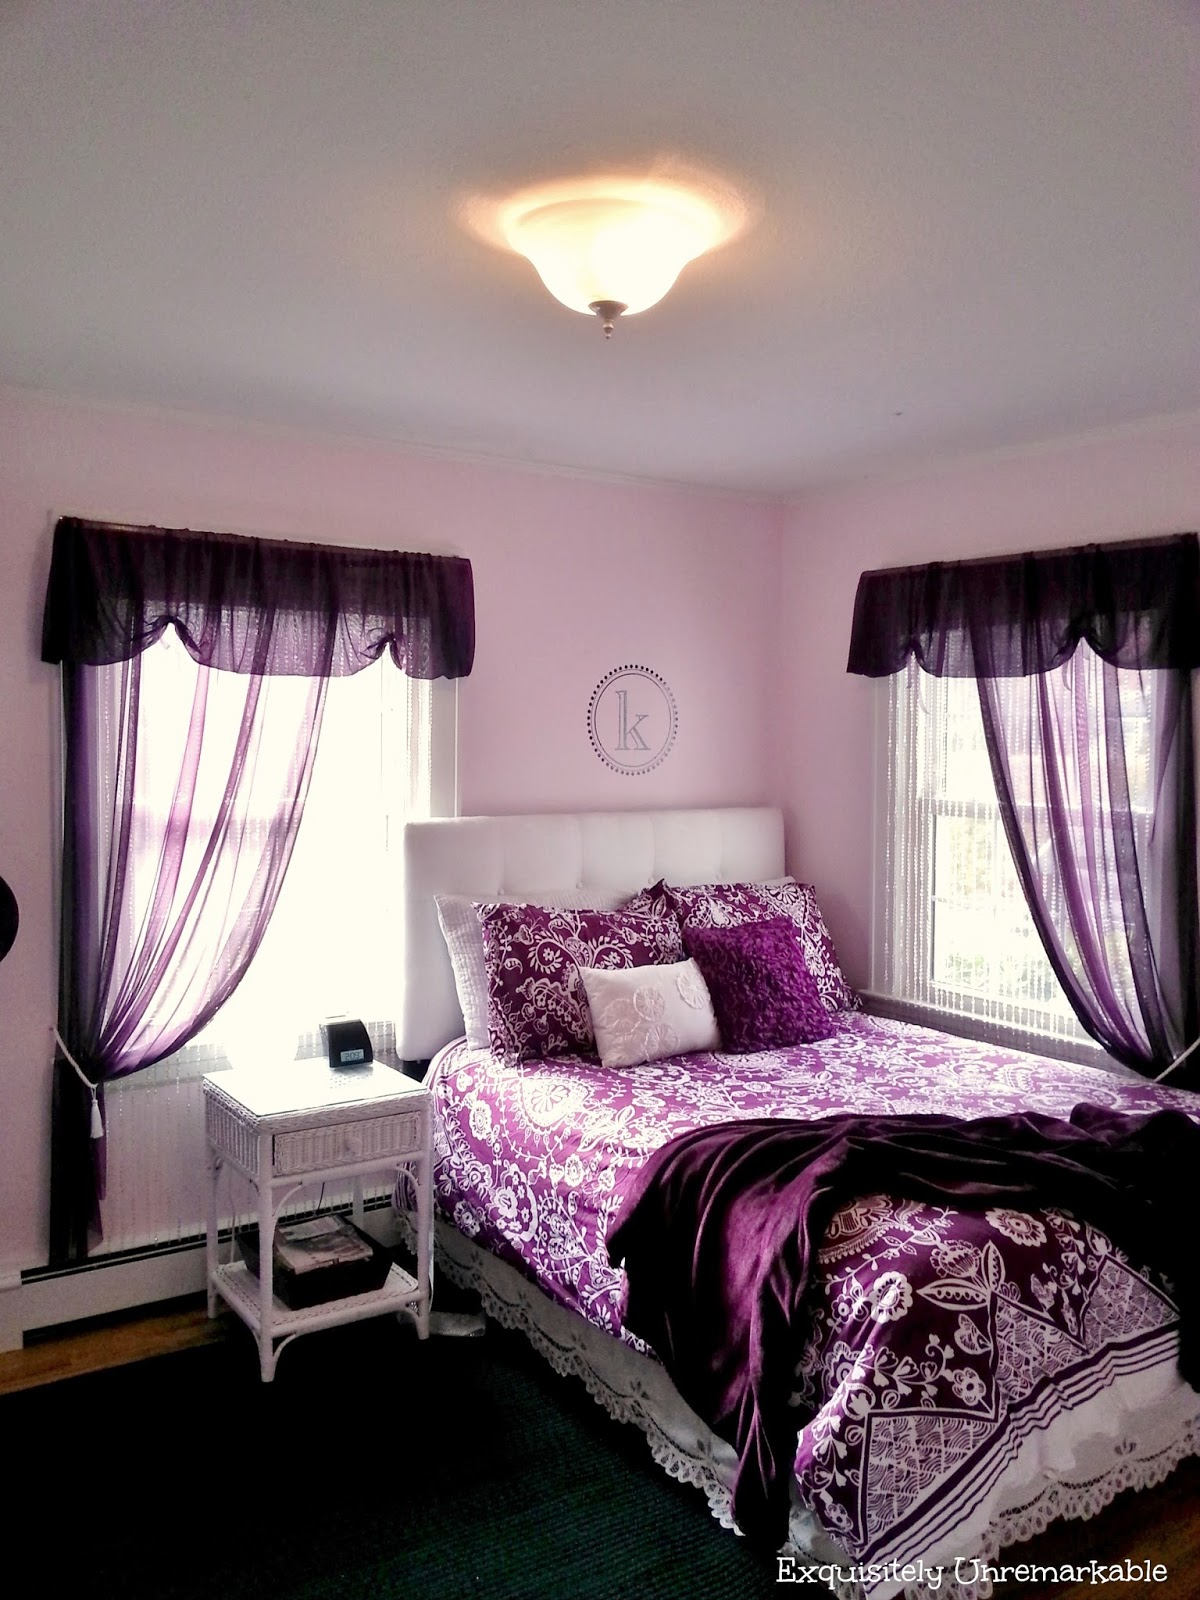 Modern Bedroom Decorating Ideas Pretty In Purple Teen Bedroom Exquisitely Unremarkable